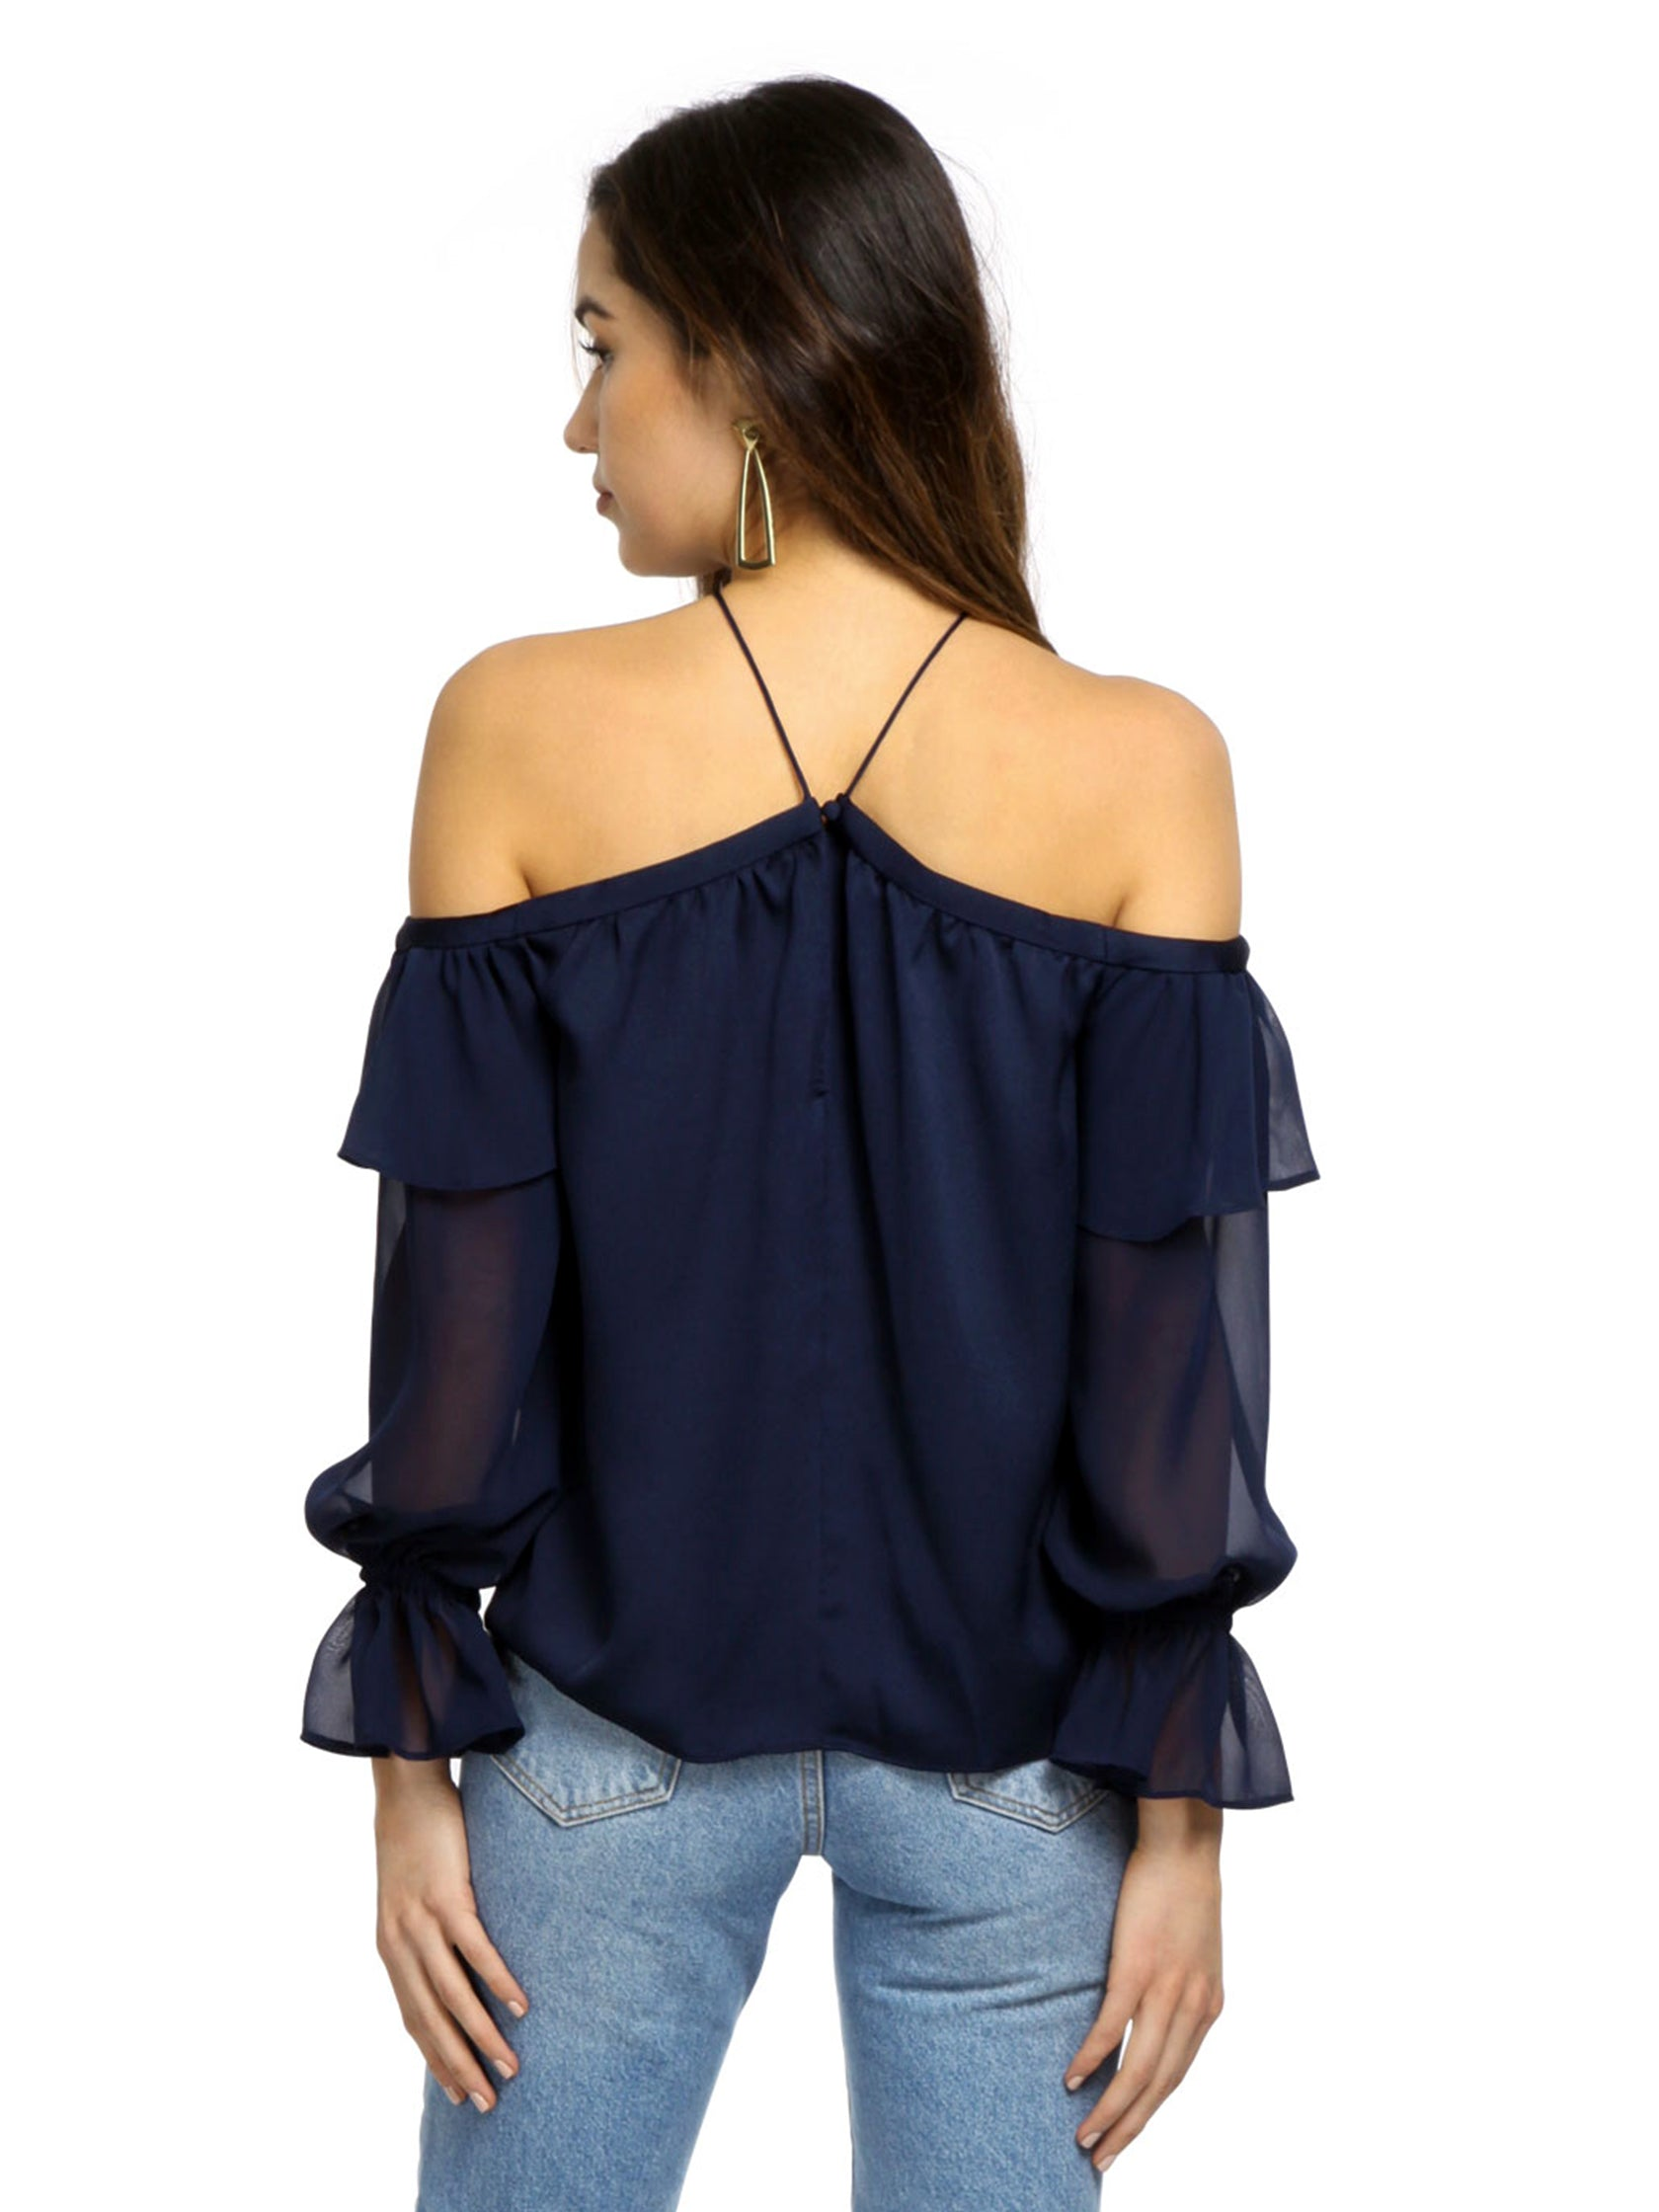 Women outfit in a top rental from 1.STATE called Cold Shoulder Halter Top